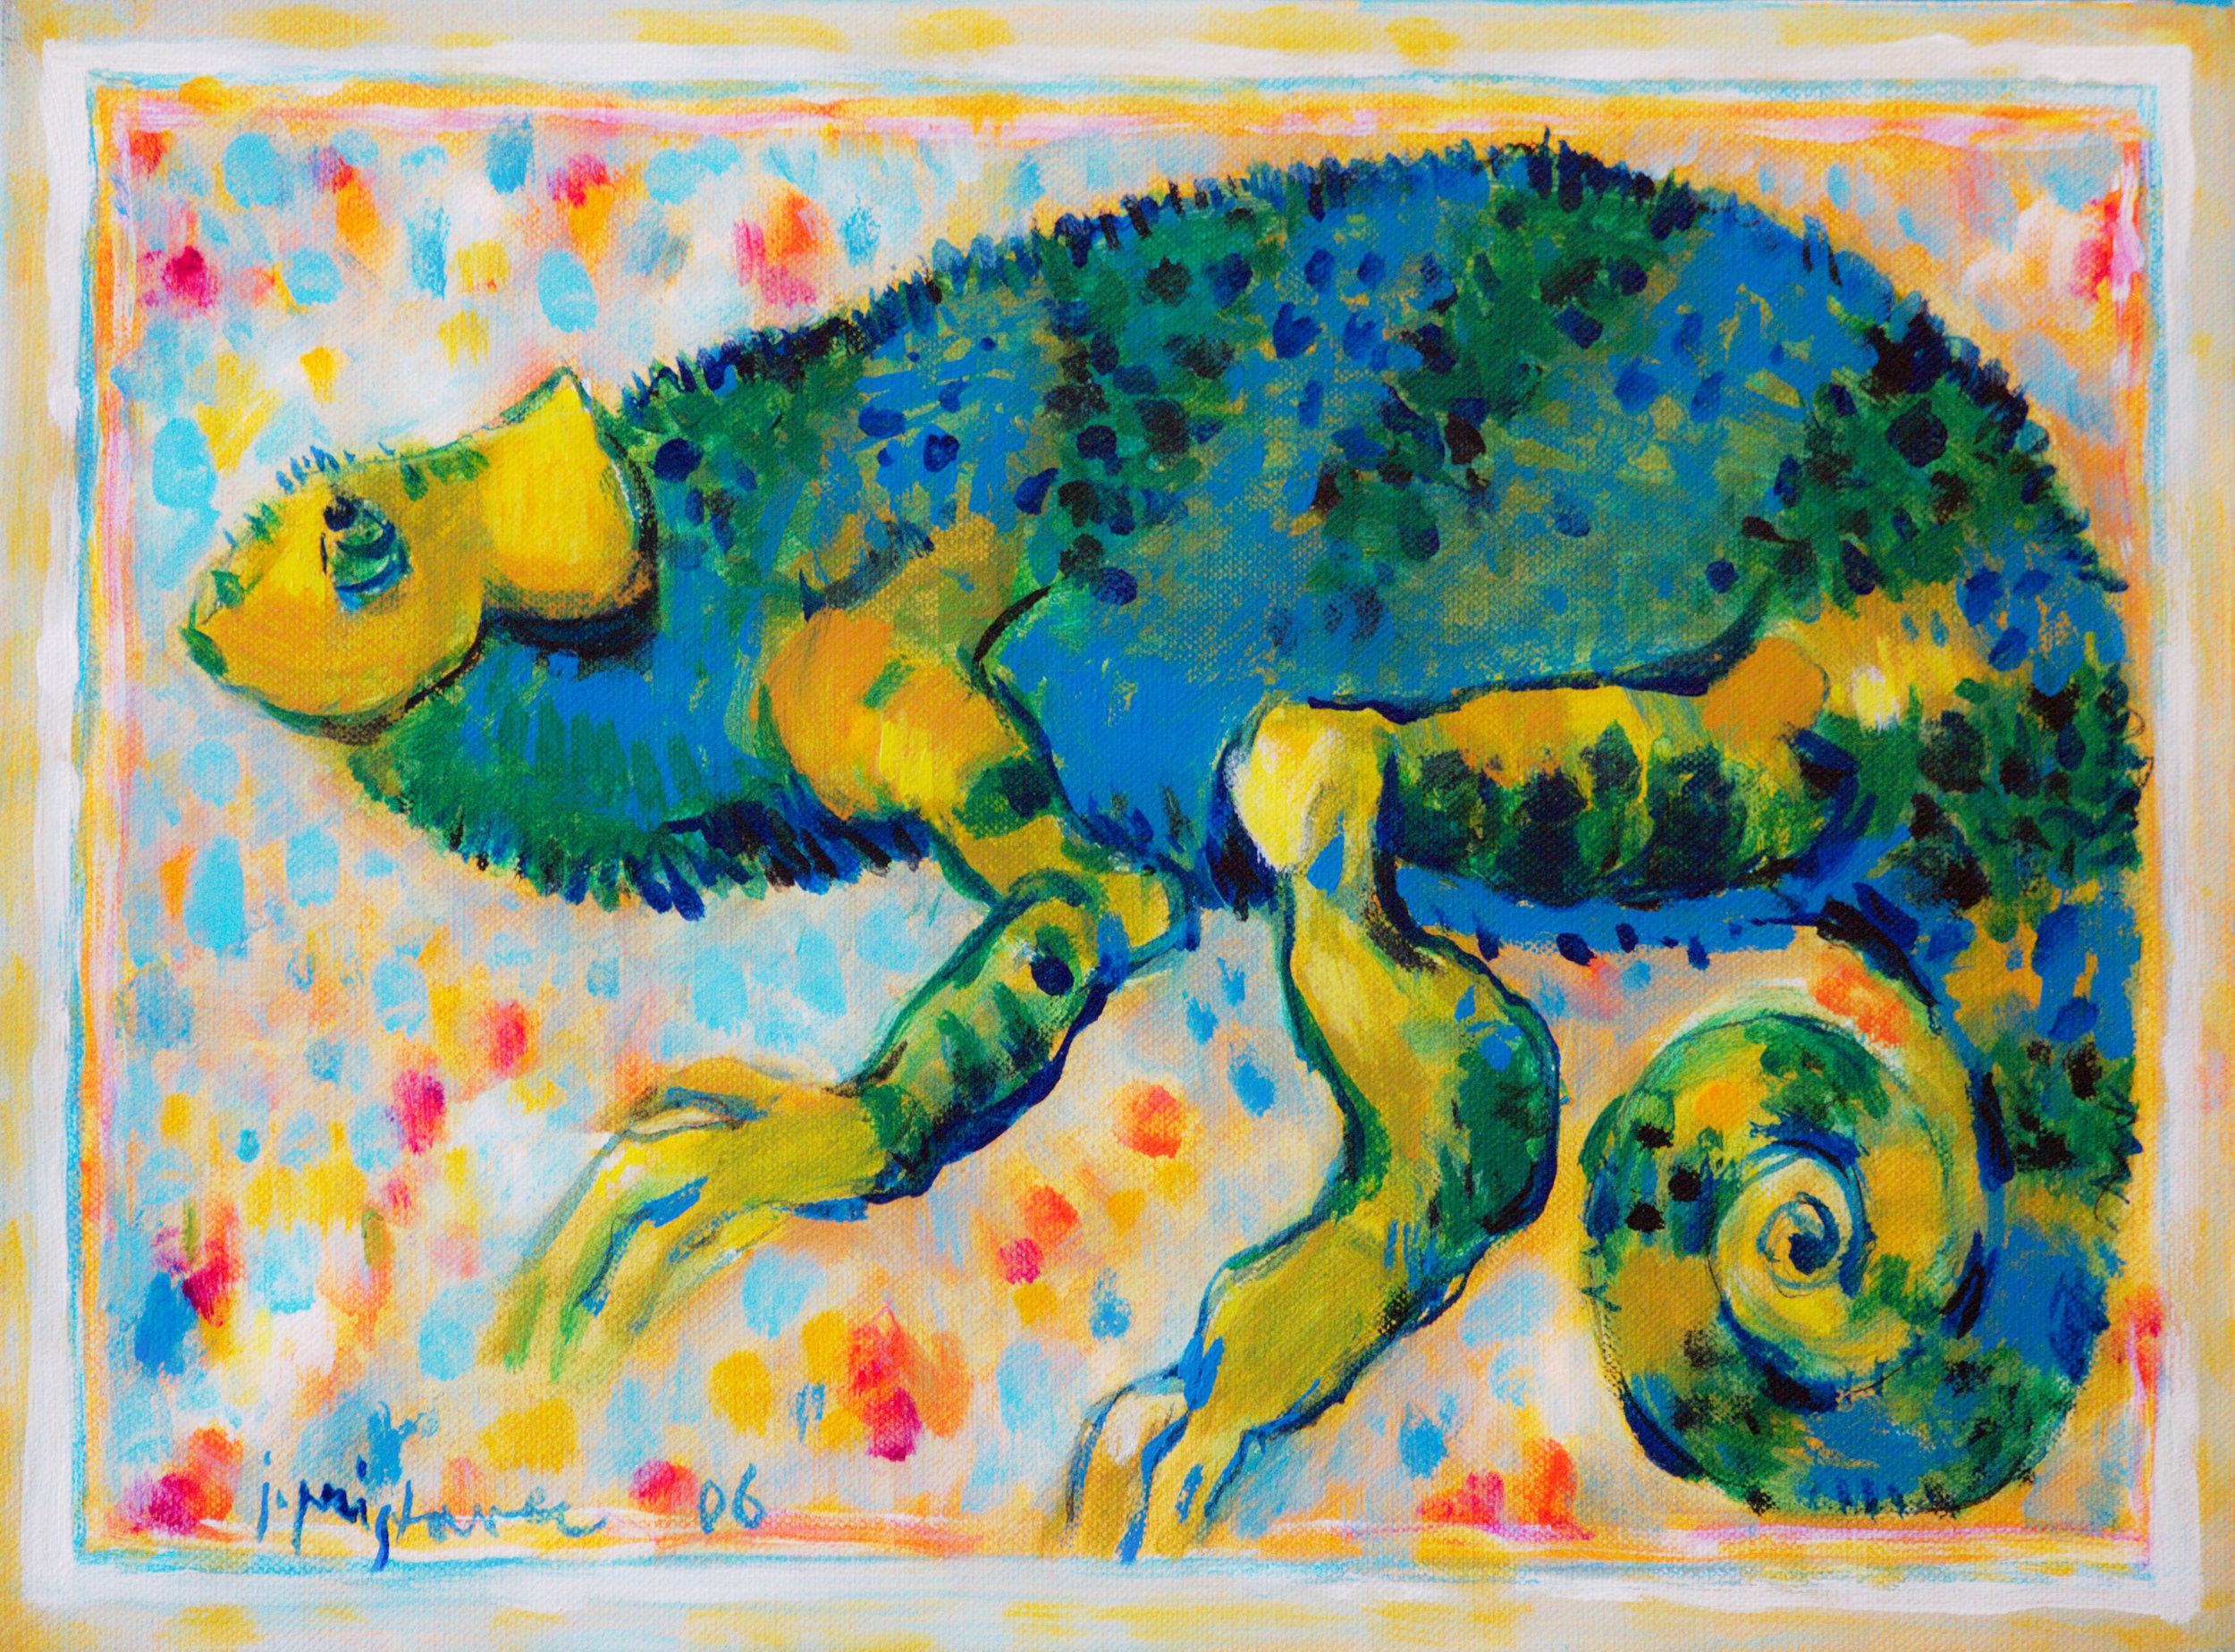 Chameleon  / 2006 / oil on canvas / 40 x 30 cm